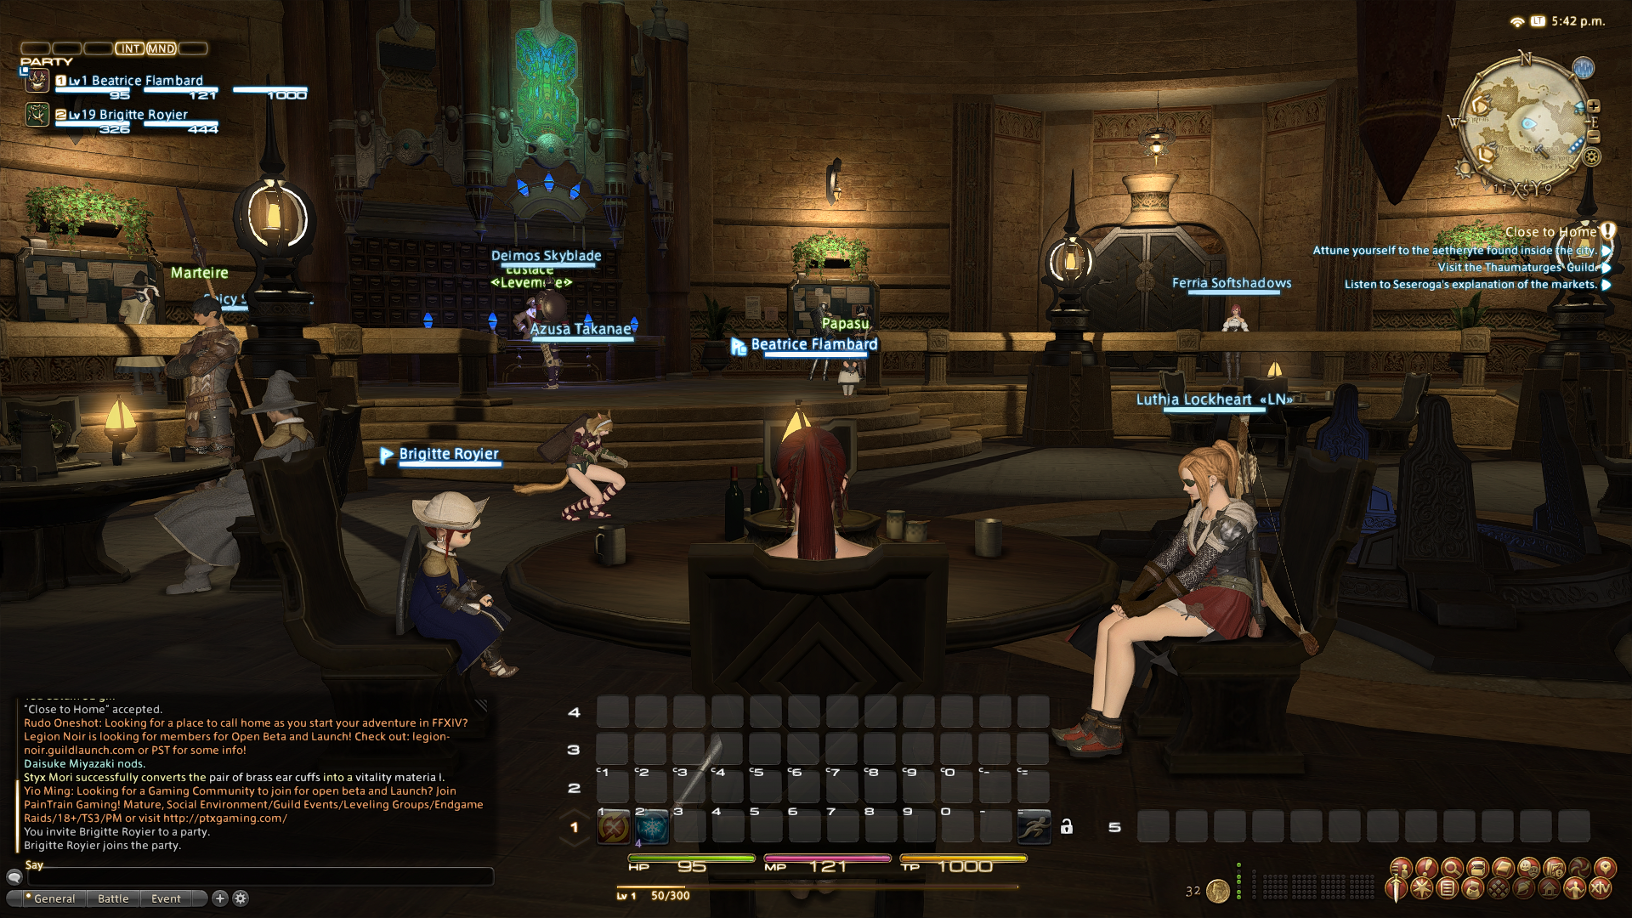 jigglyjam ffxiv make petbar command toggle your visibility pictures remember anyone post know